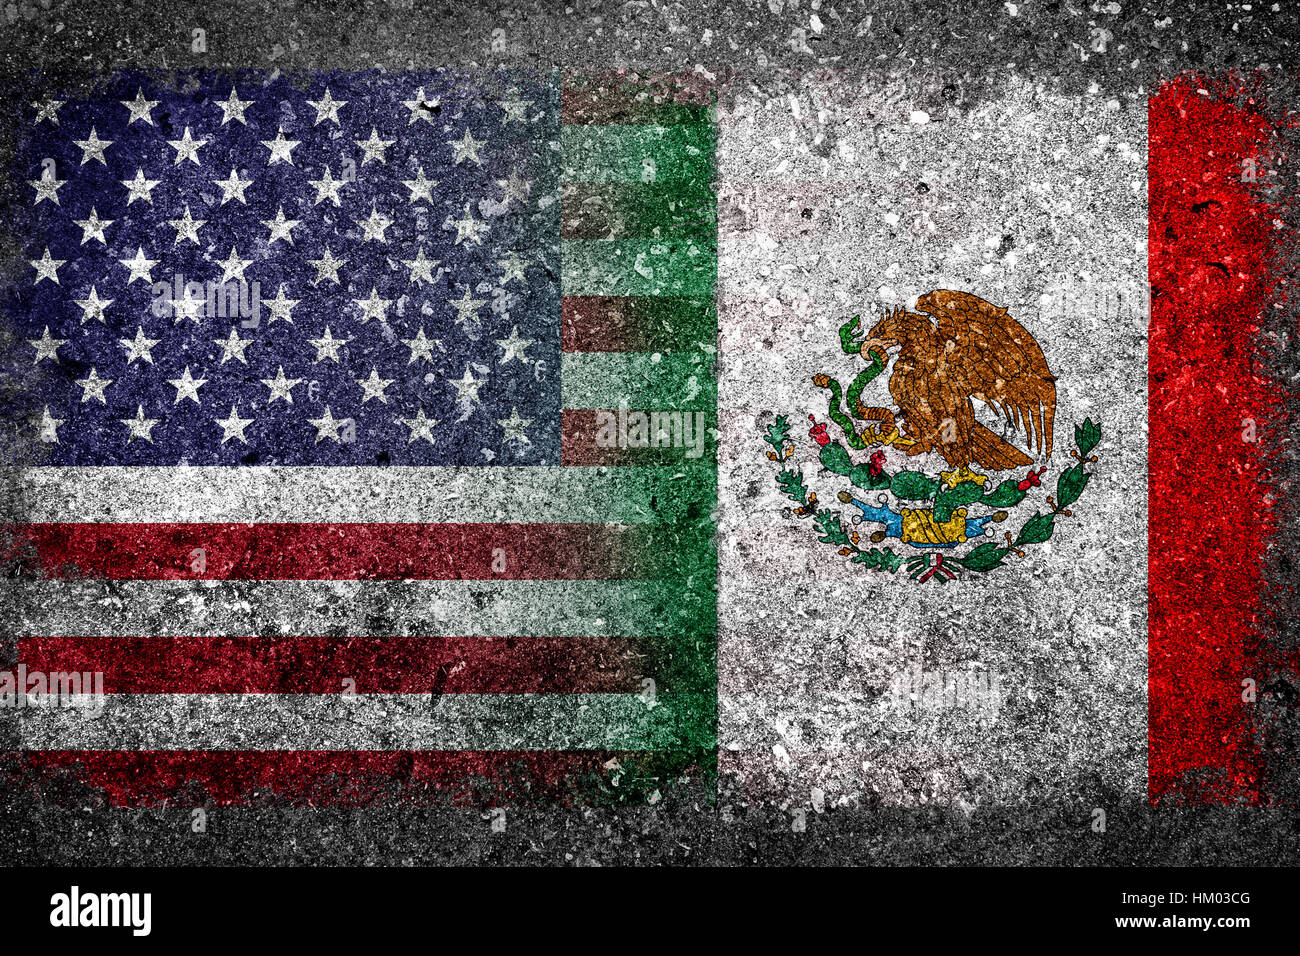 Merged Flag Of USA And Mexico Painted On Grunge Concrete Concept - Usa and mexico